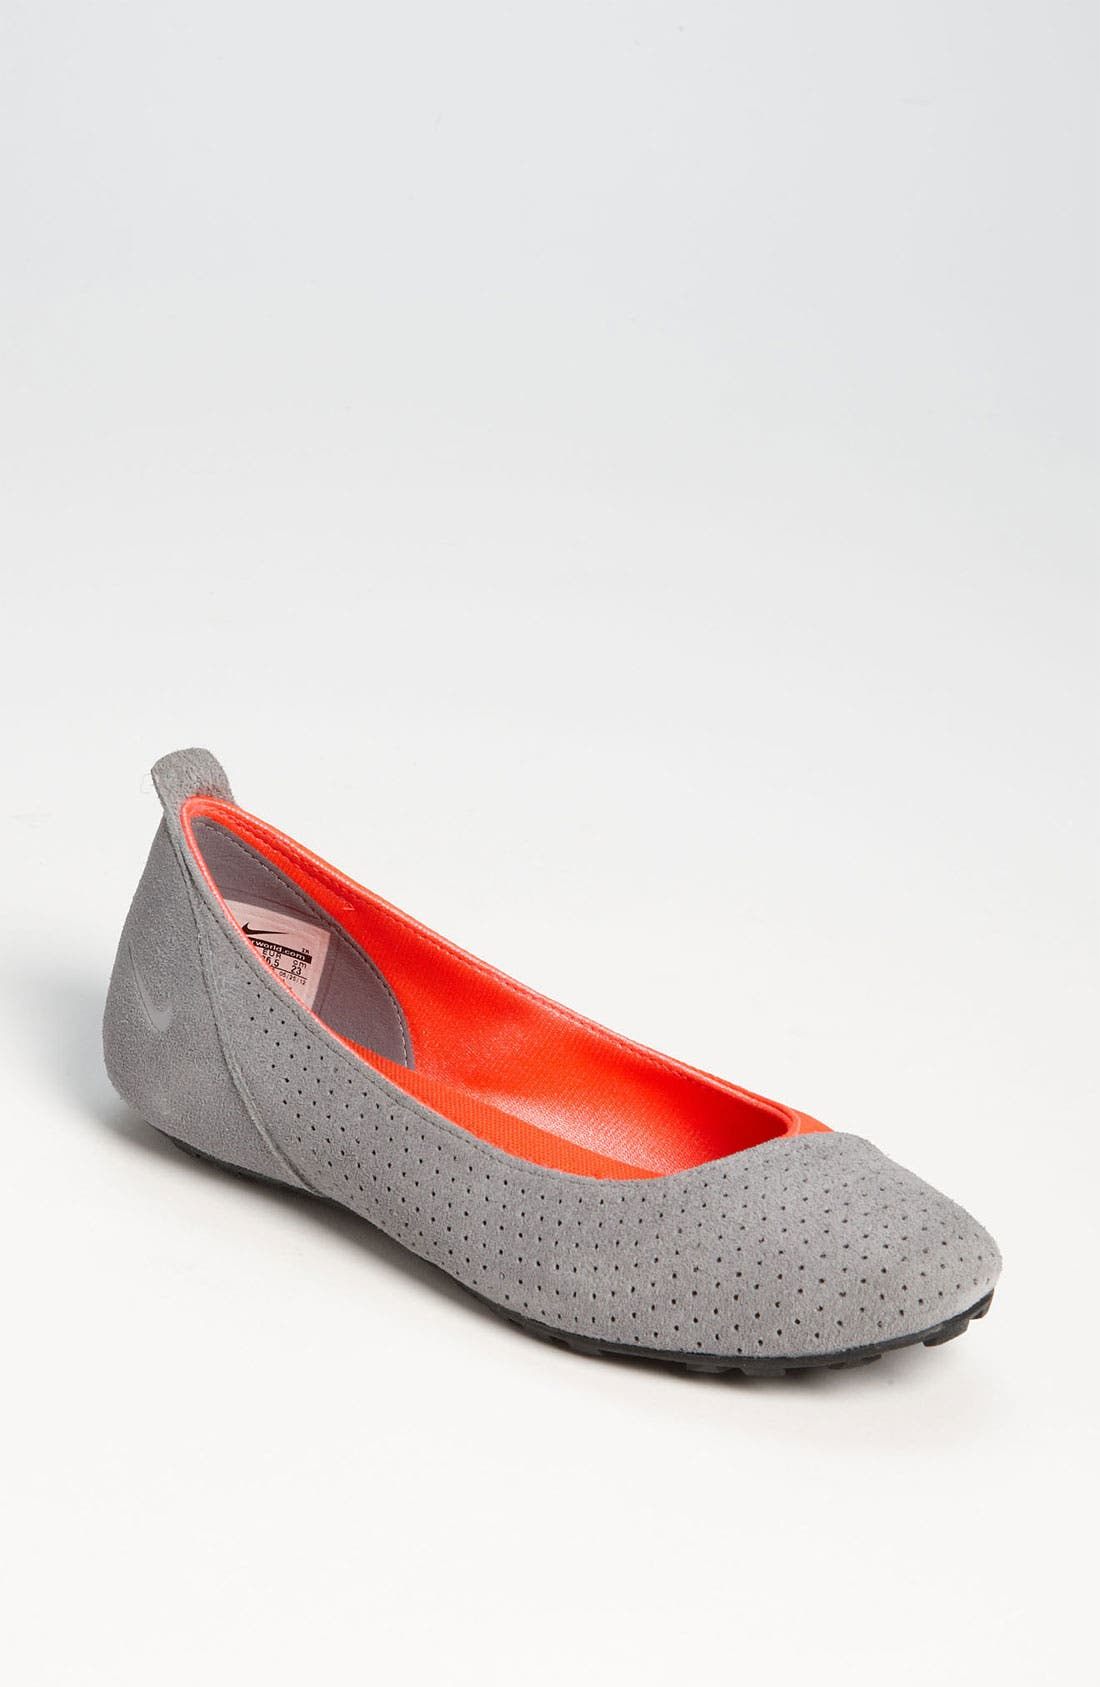 Alternate Image 1 Selected - Nike 'Amarina' Ballerina Flat